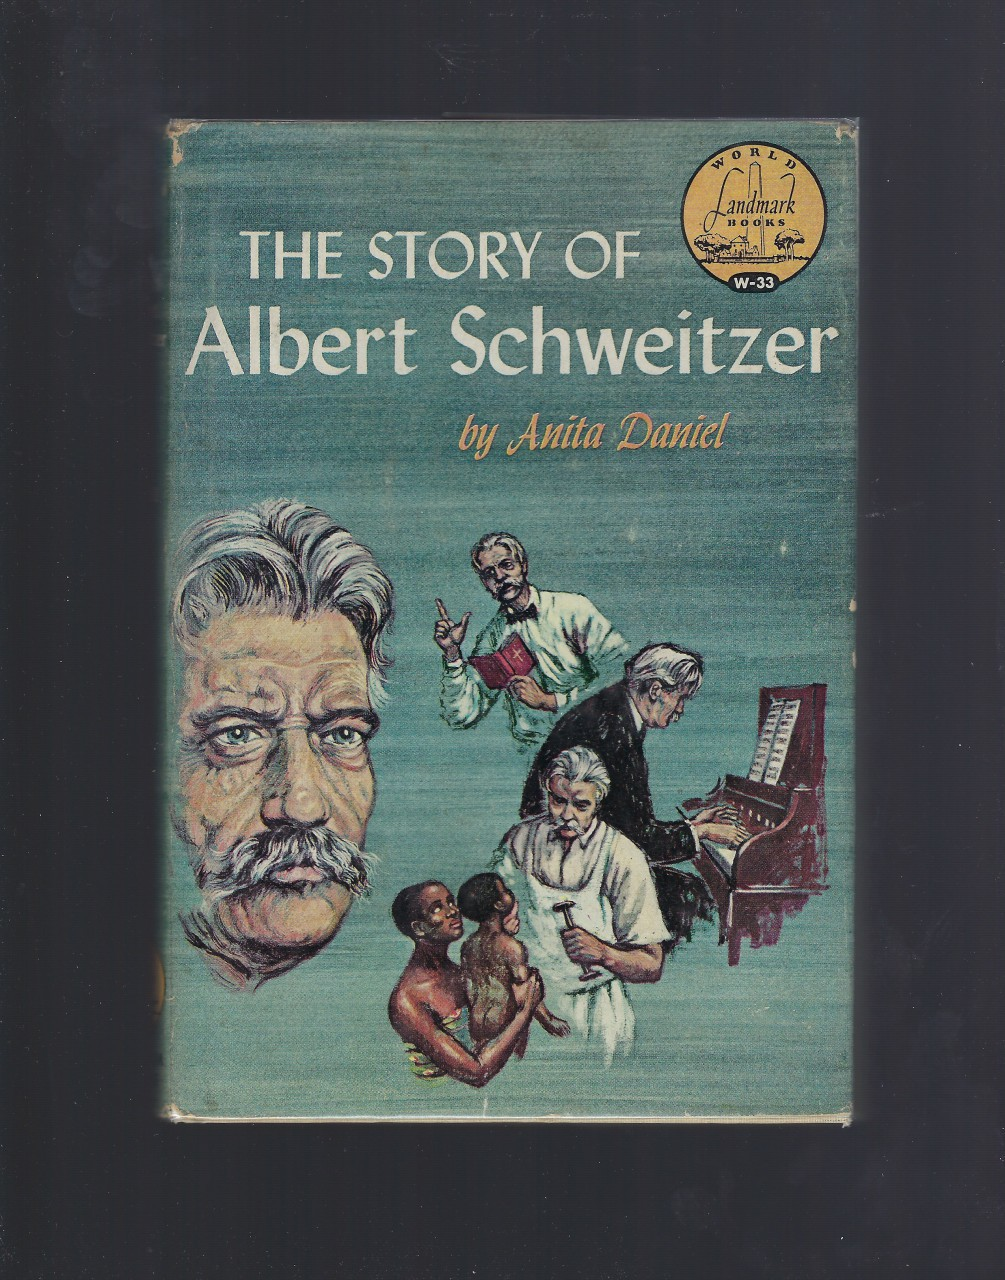 The Story of Albert Schweitzer World Landmark #33 w Author Letter HB/DJ, Anita Daniel; Illustrator-Erica Anderson; Illustrator-W. T. Mars